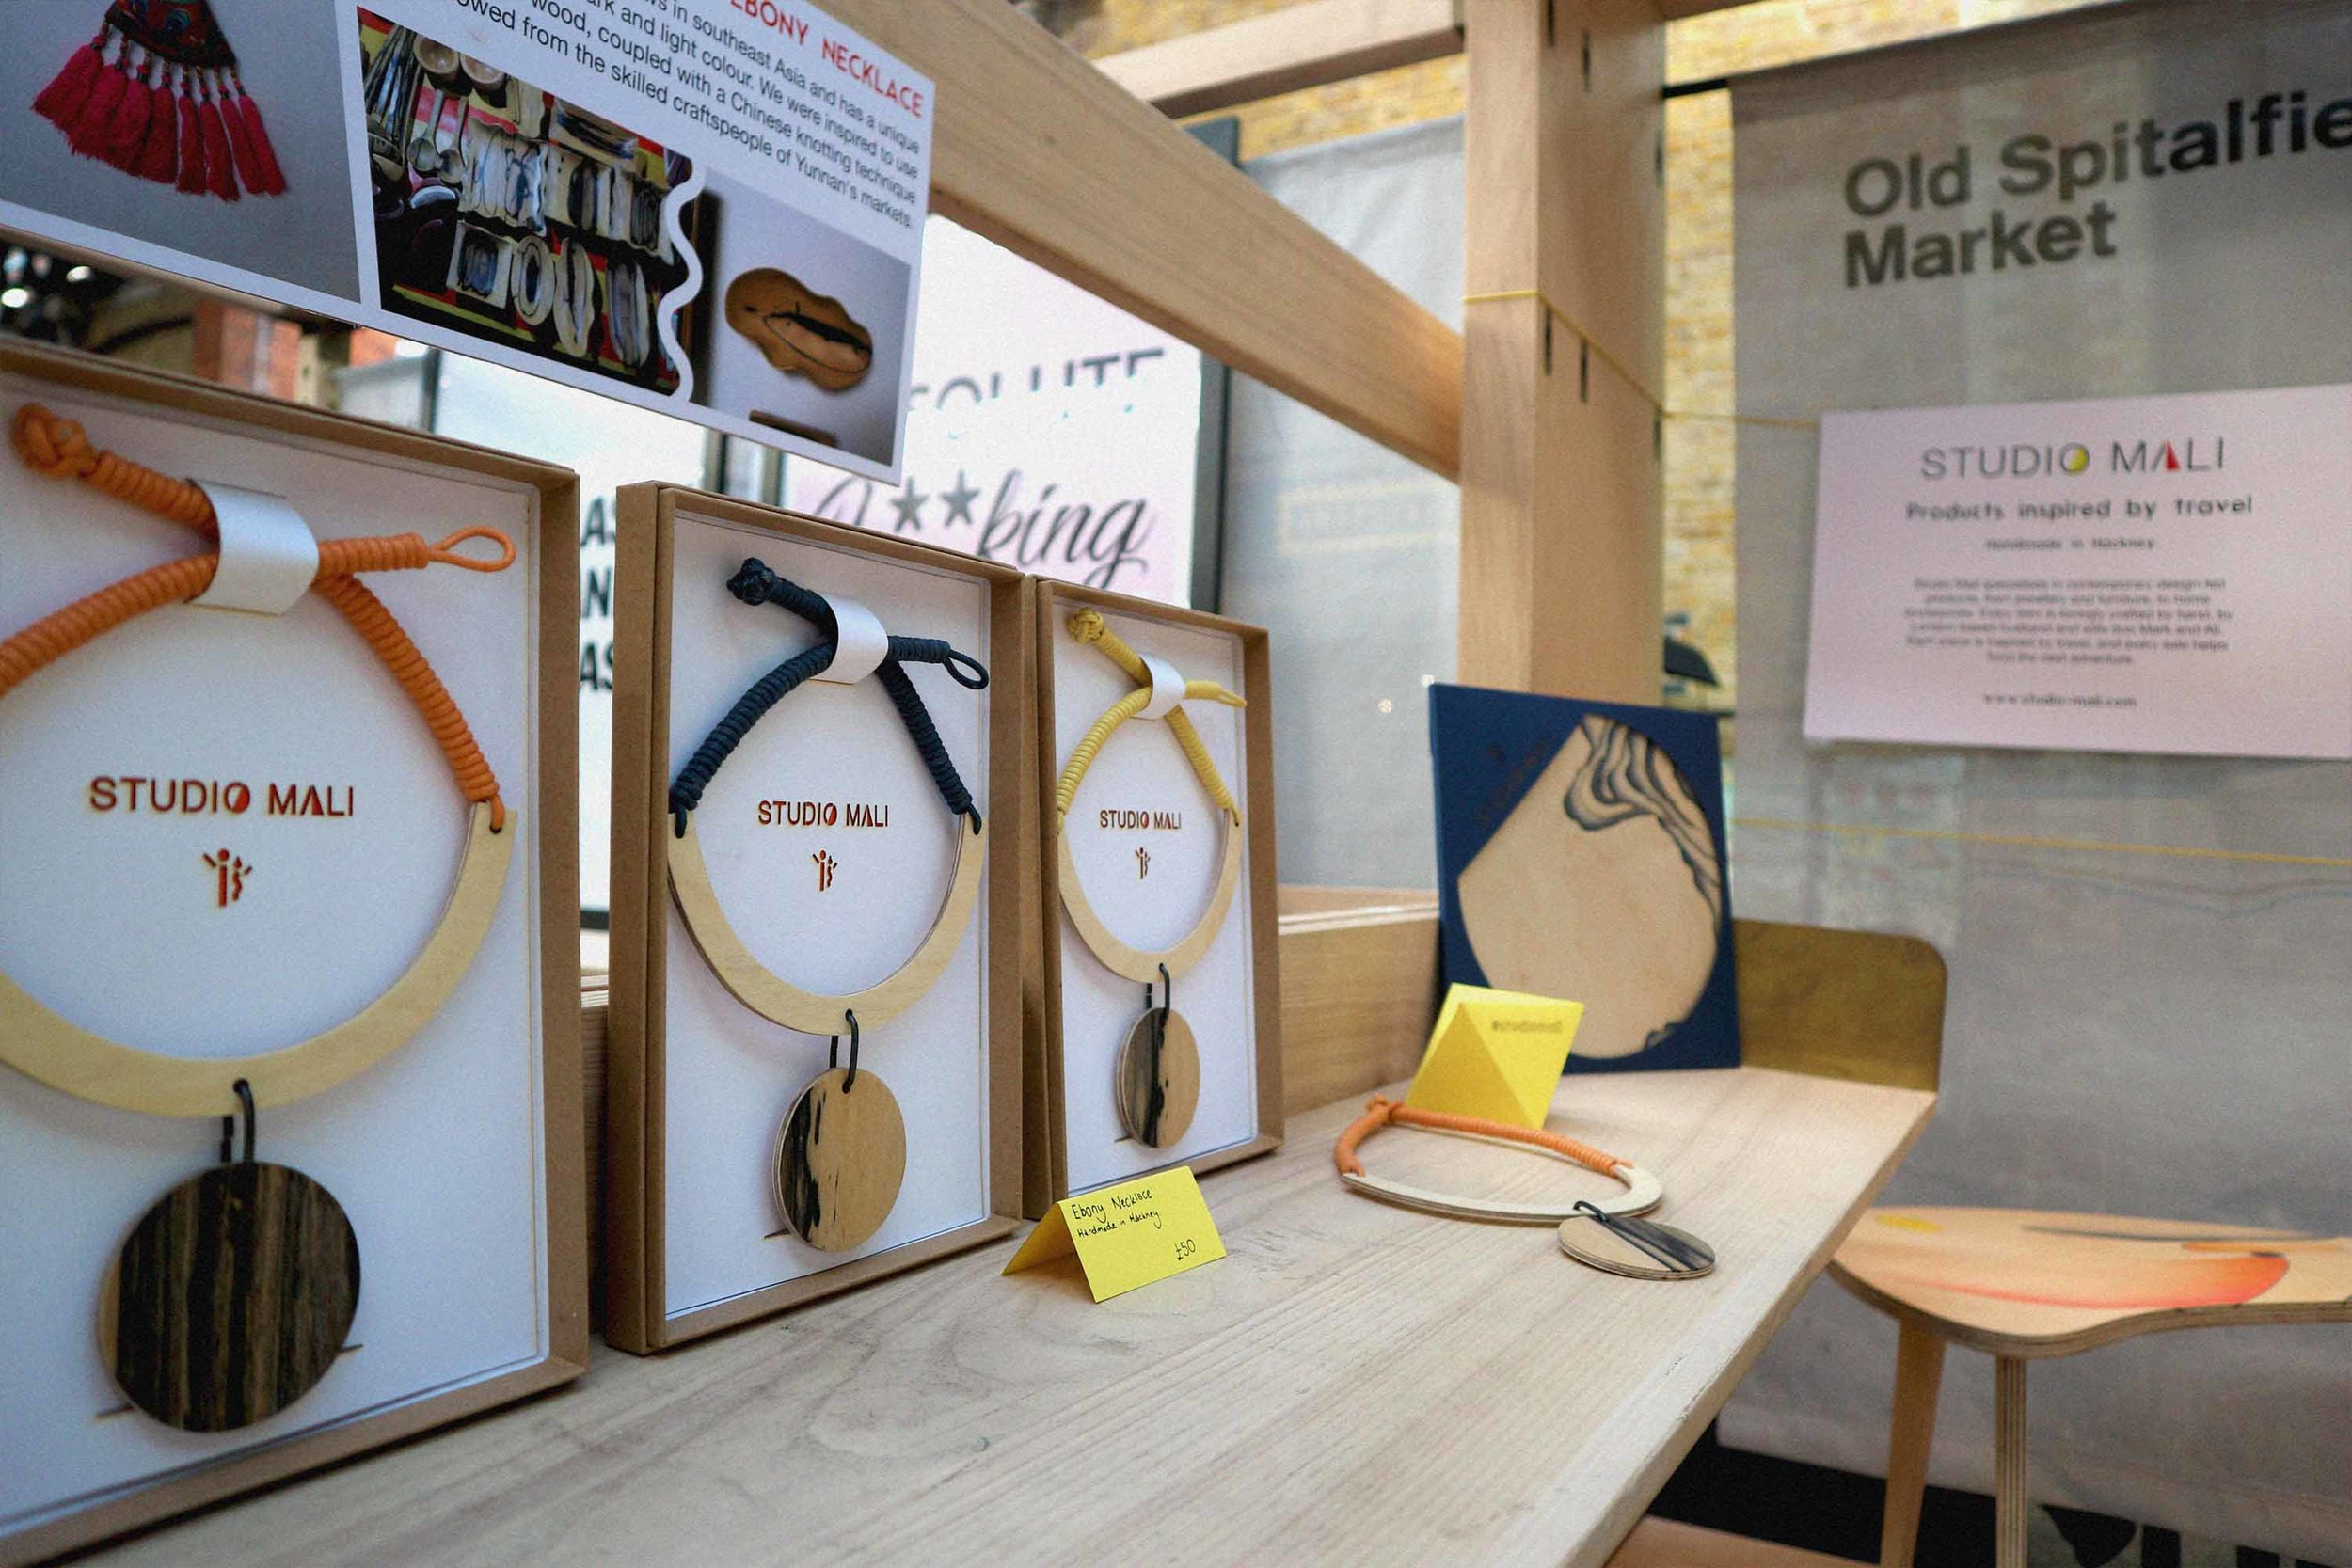 Our hand-made Ebony Necklaces displayed in their gift boxes, £55.